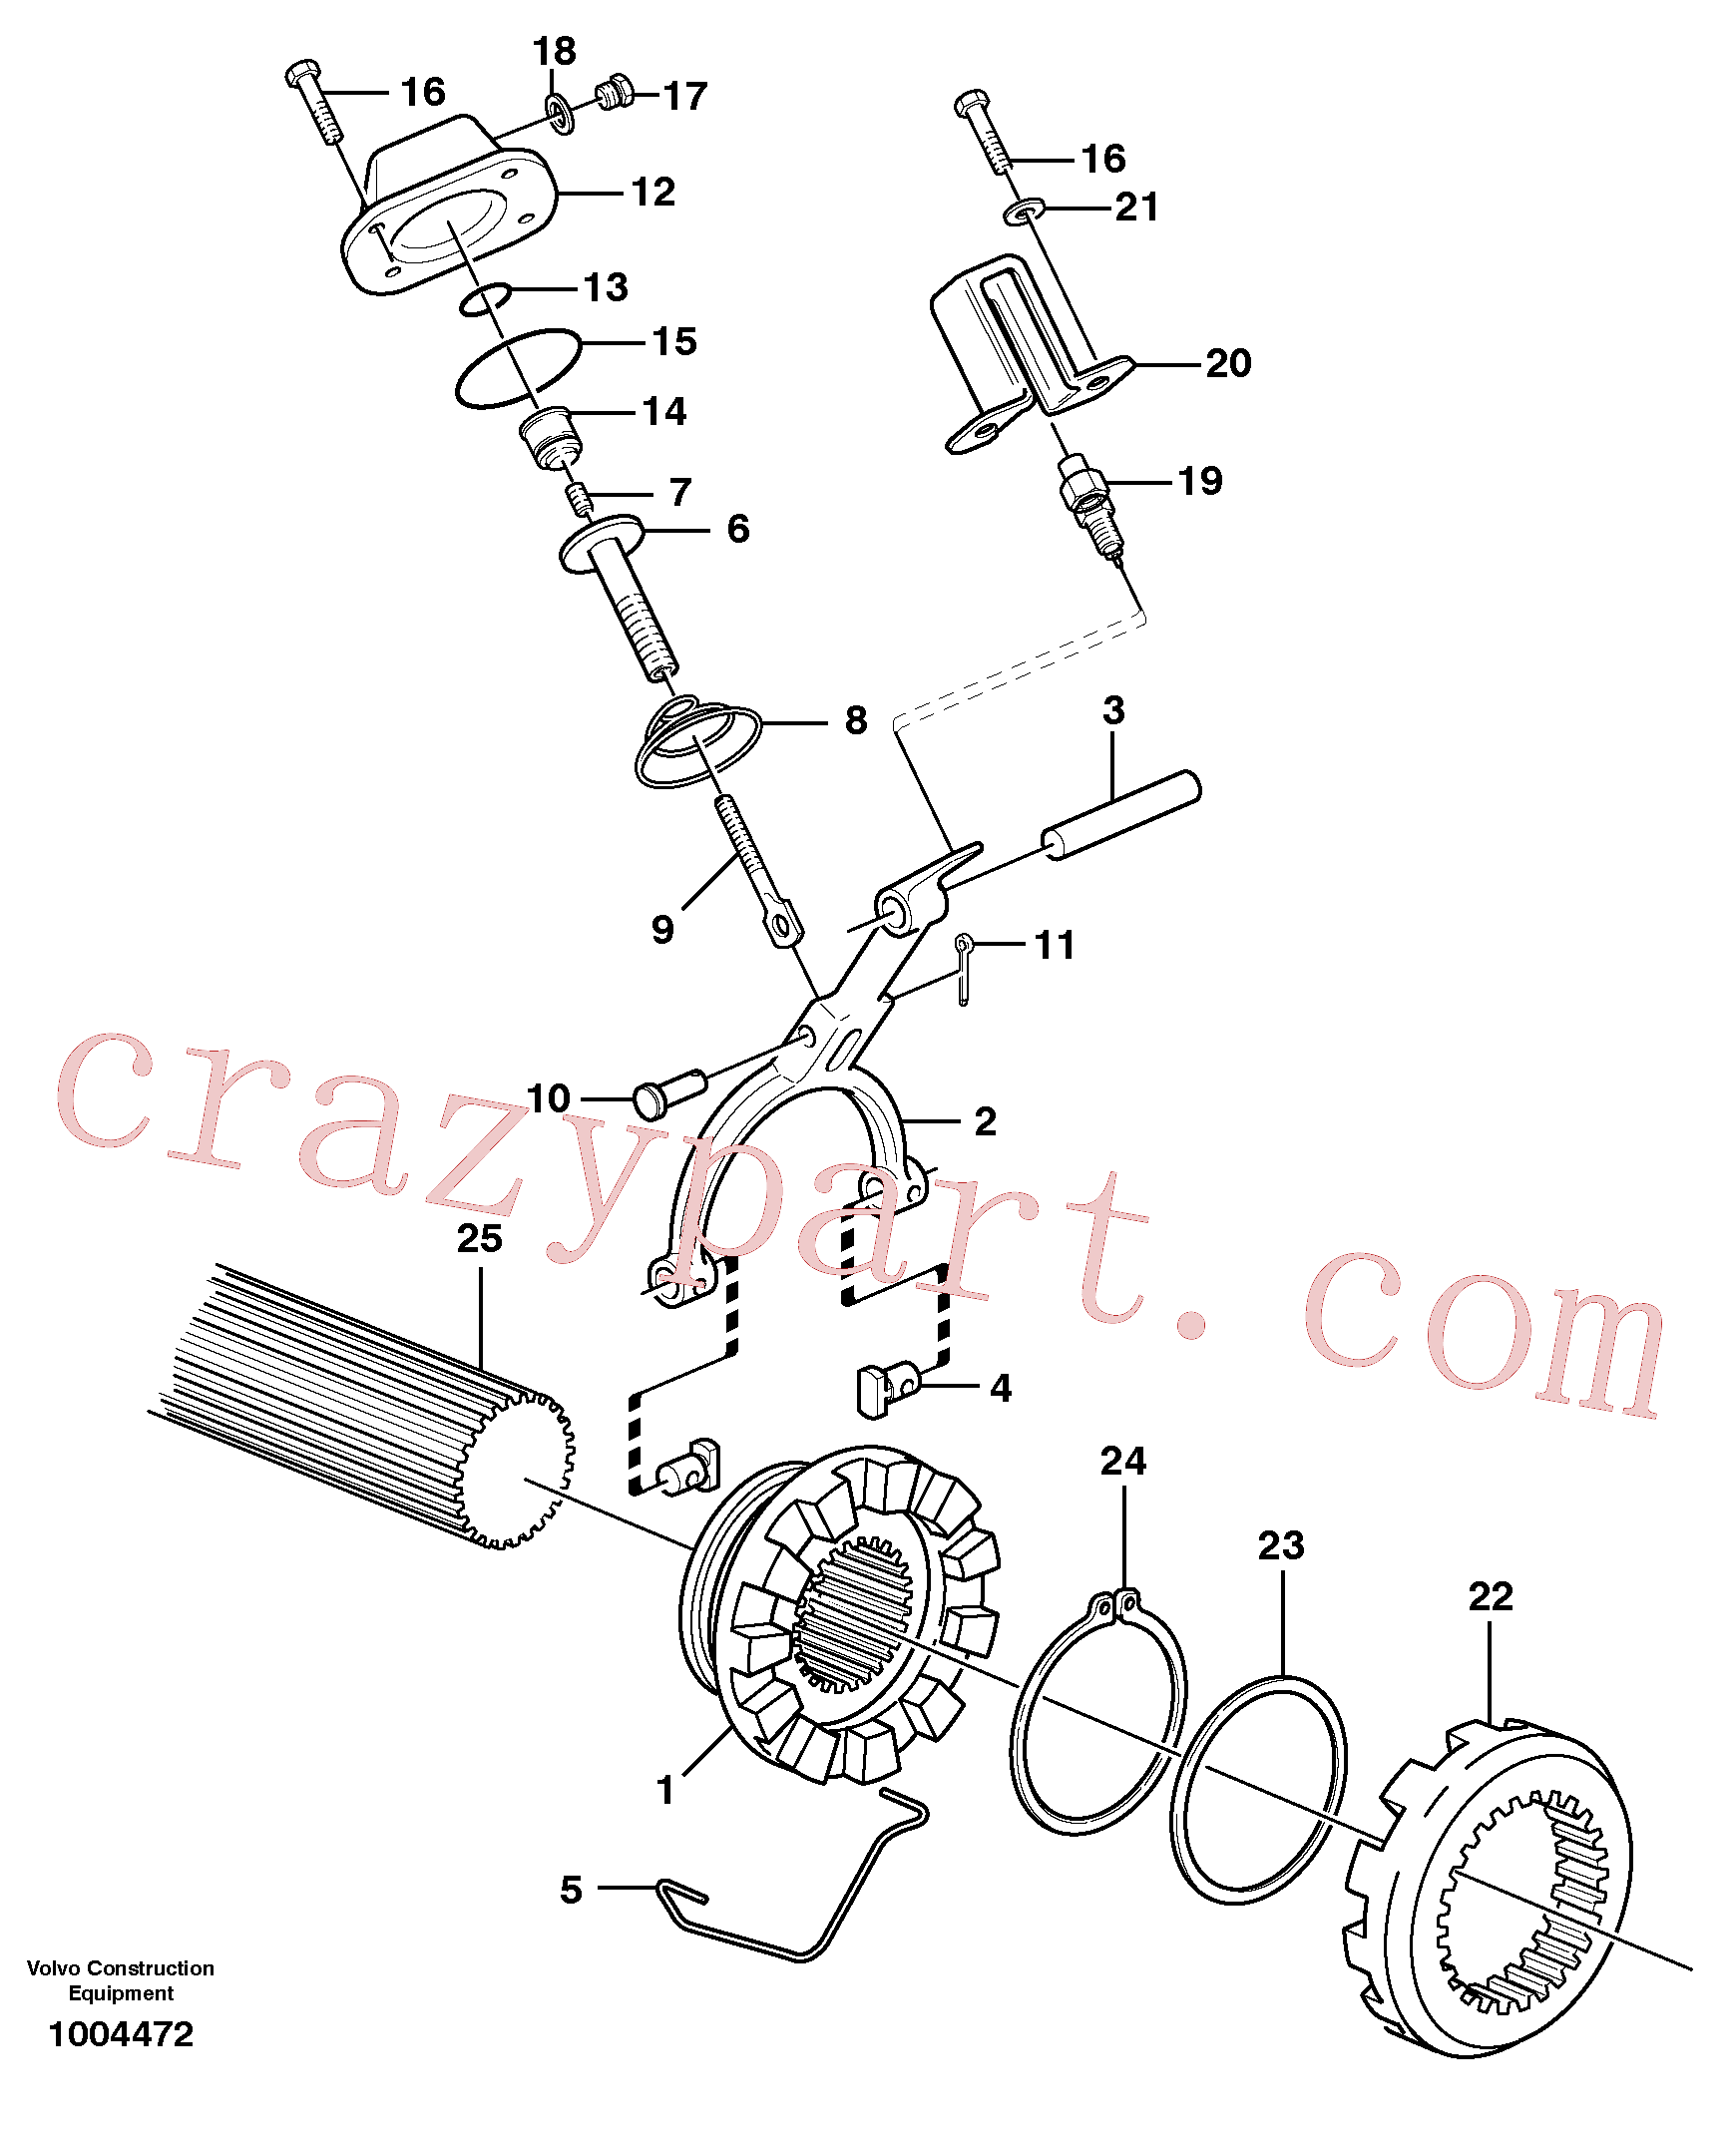 VOE7383971 for Volvo Differential lock(1004472 assembly)